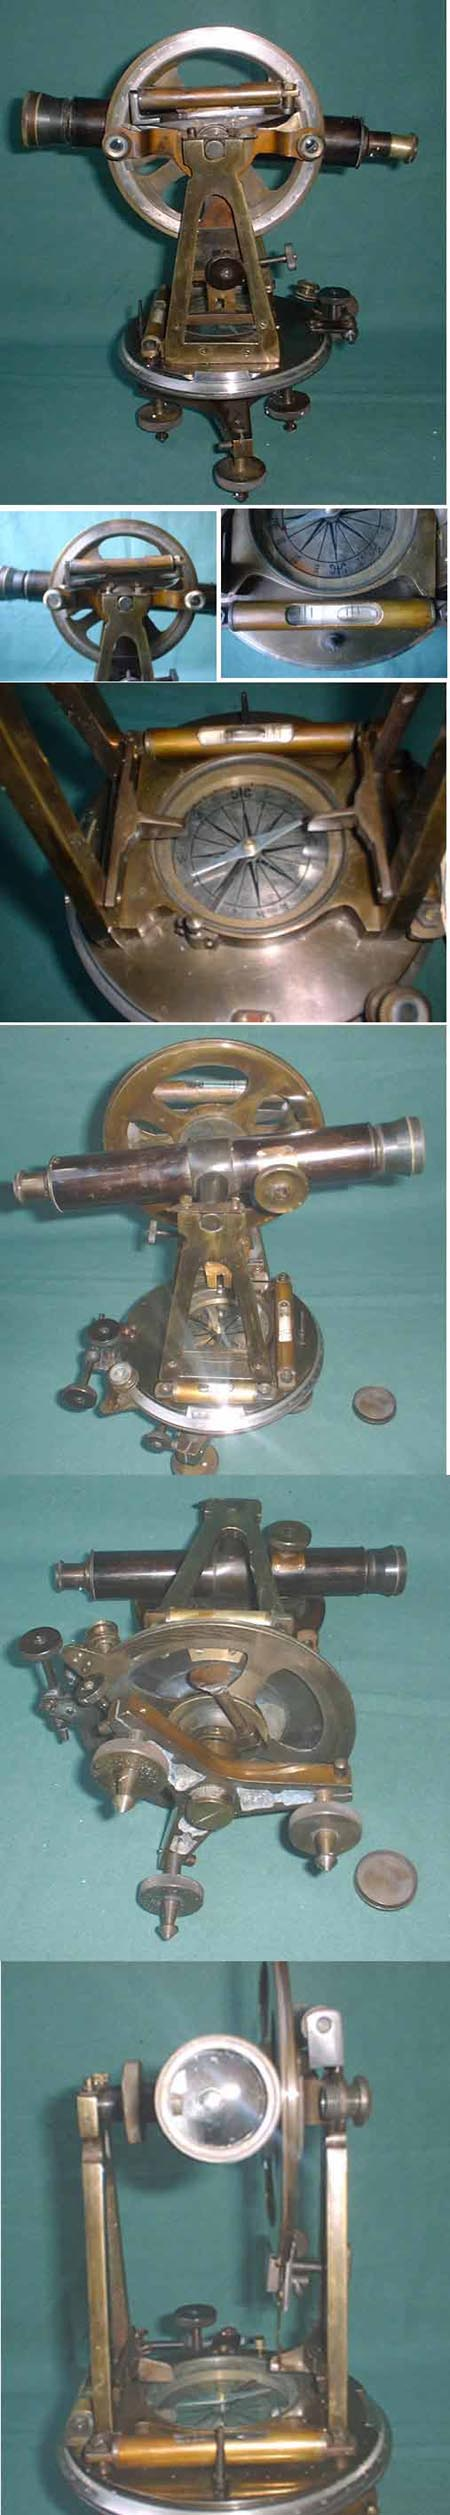 old theodolite replica 13 inch tall with telescope